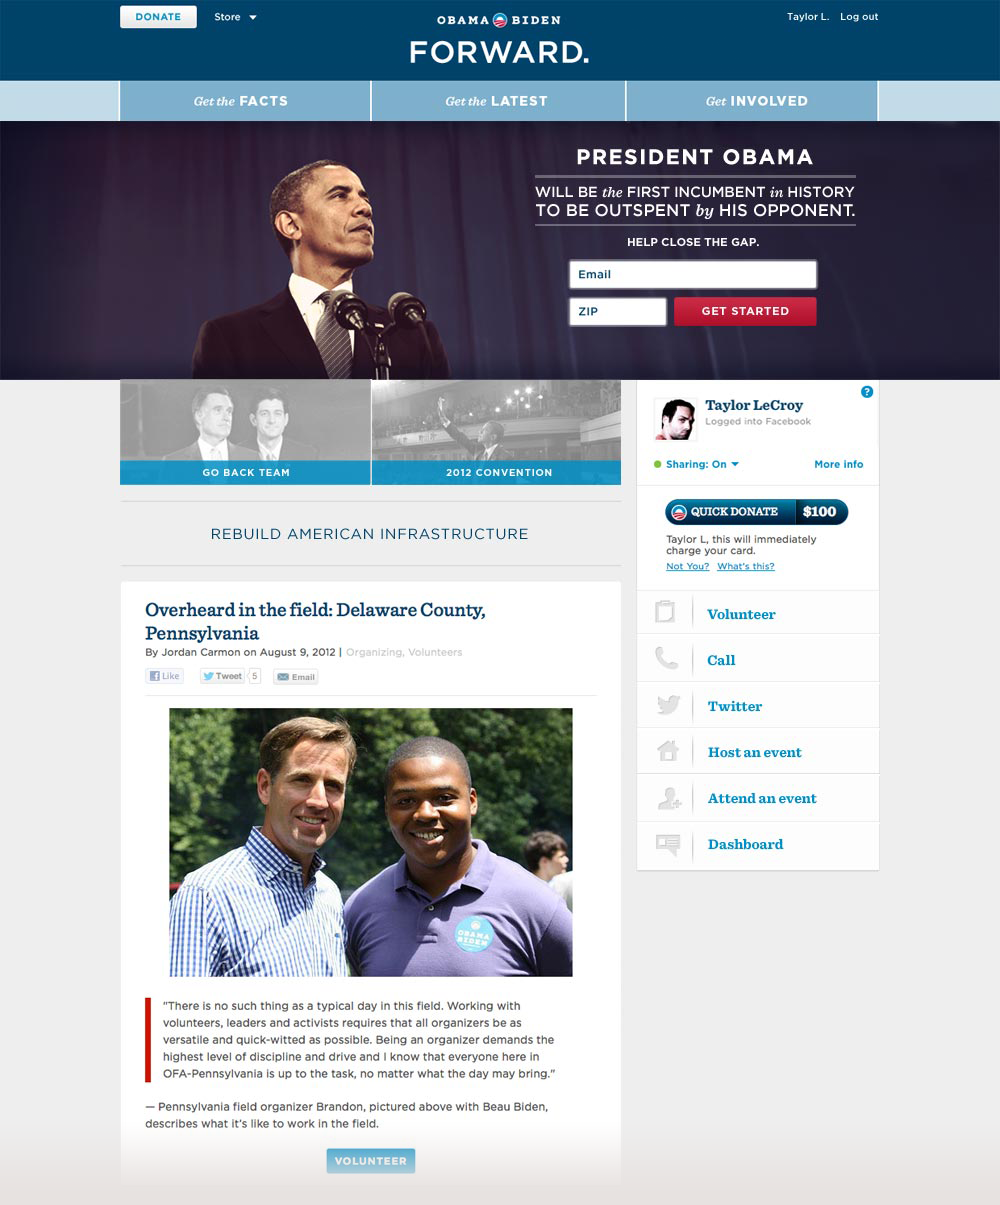 Homepage of barackobama.com